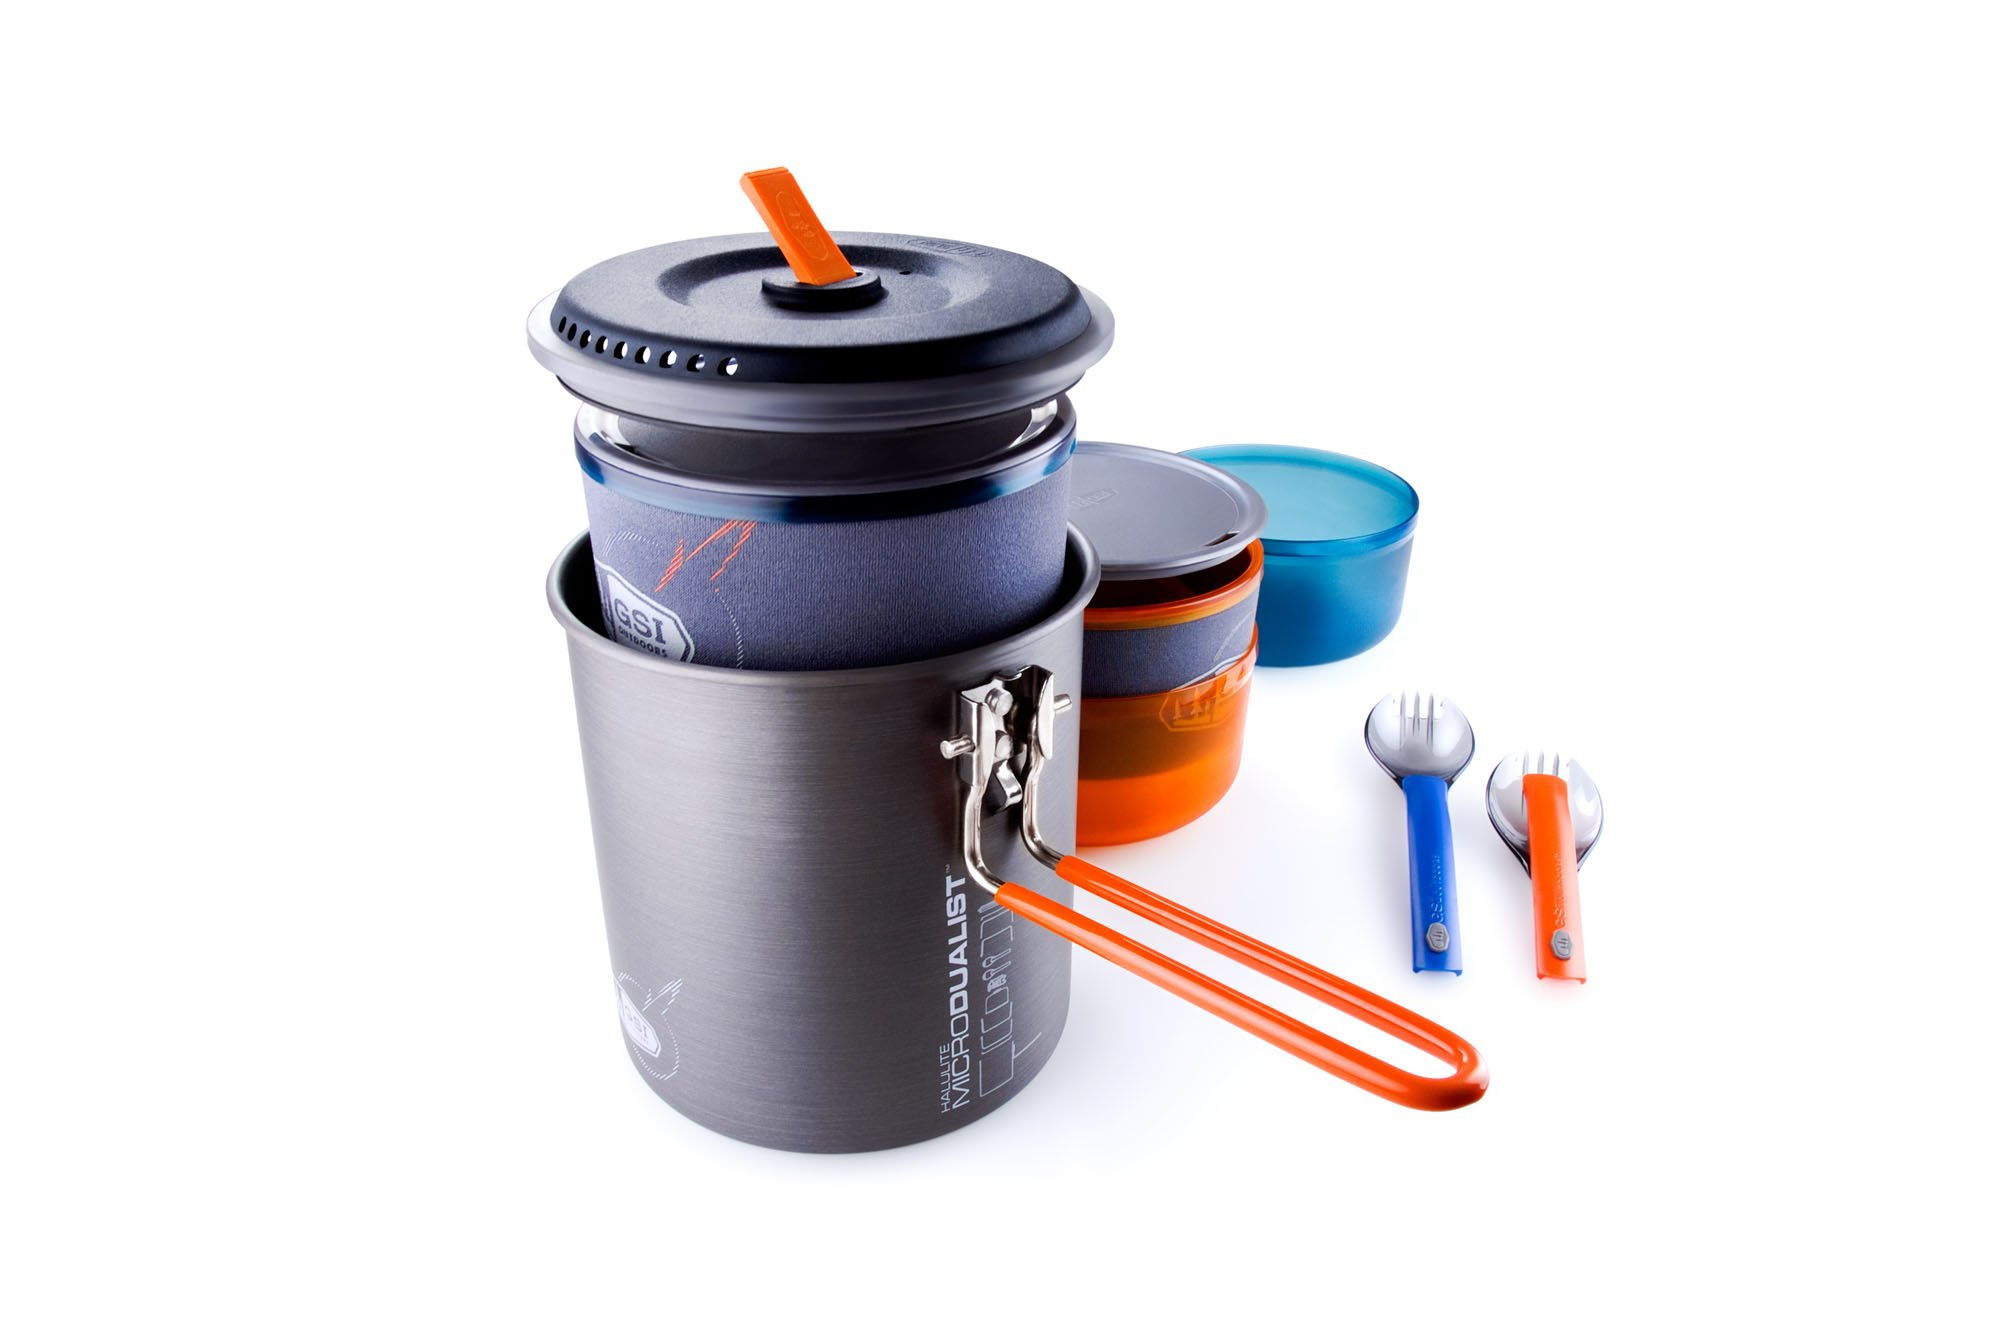 GSI Outdoors - Halulite Microdualist, Cookset for Two, Superior Backcountry Cookware Since 1985 by GSI Outdoors